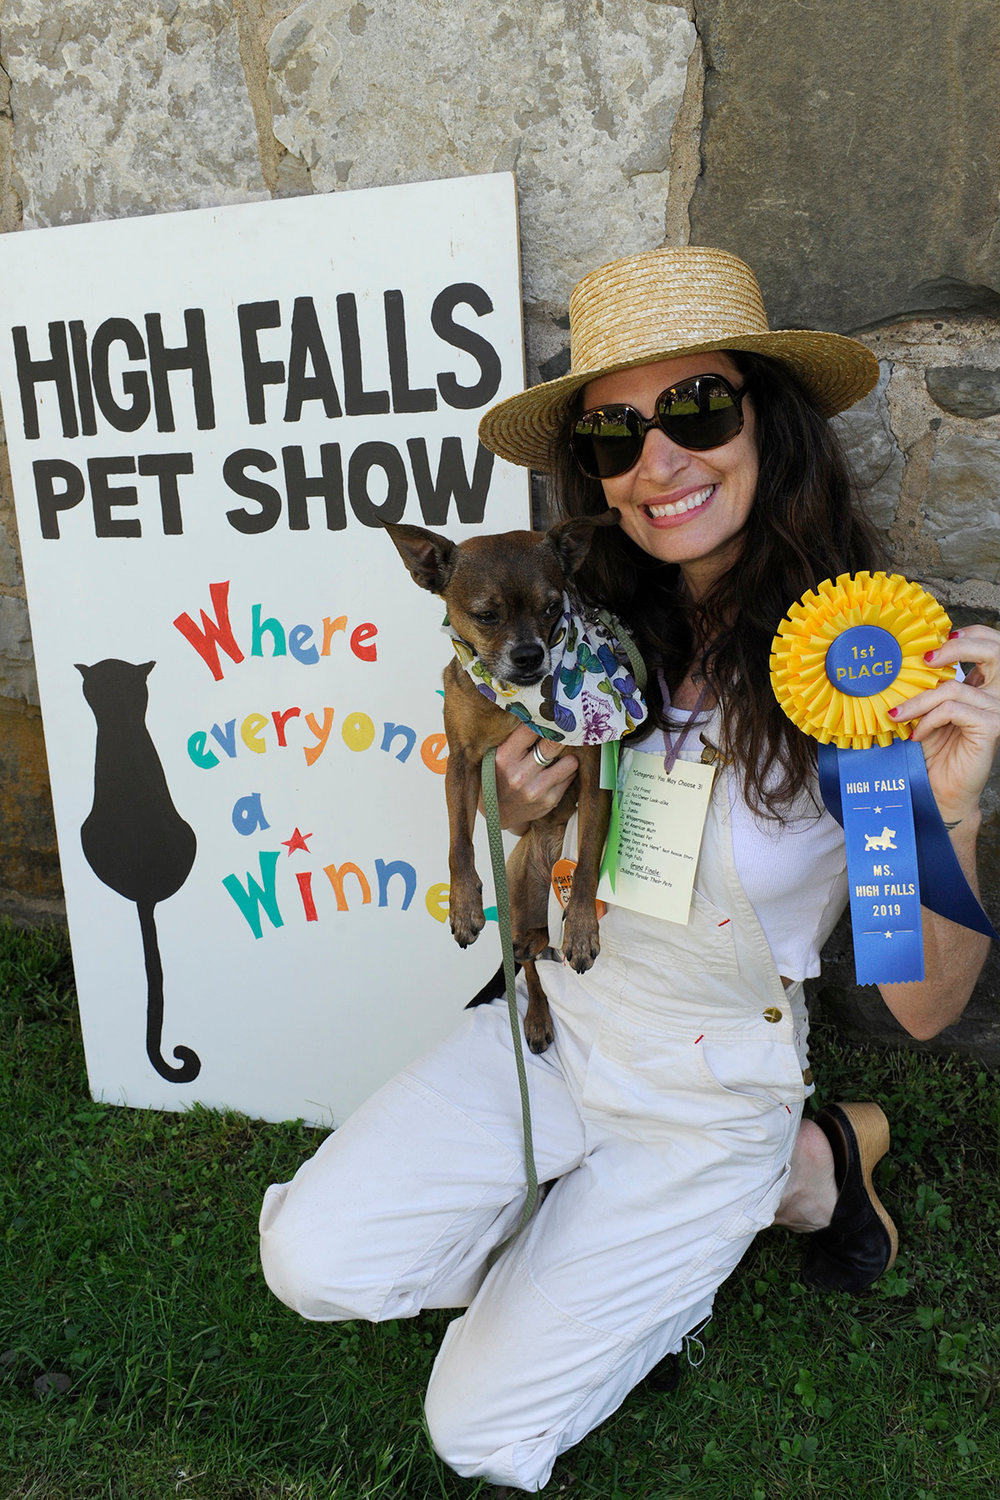 High Falls Pets Show Ms. High Falls winner!